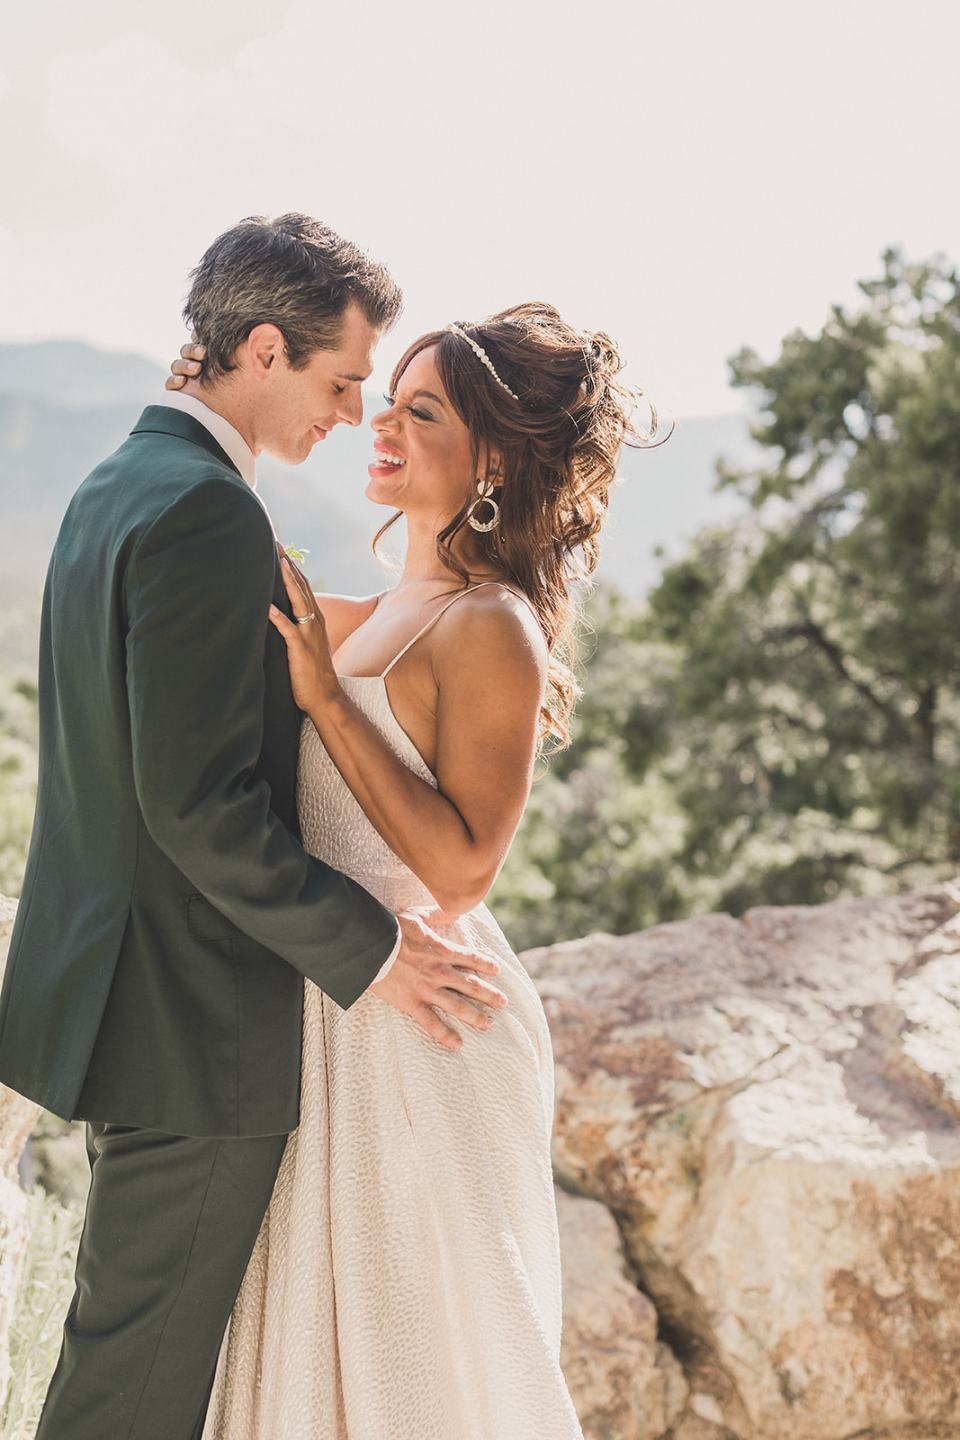 wedding portraits during Las Vegas styled shoot photographed by Taylor Made Photography